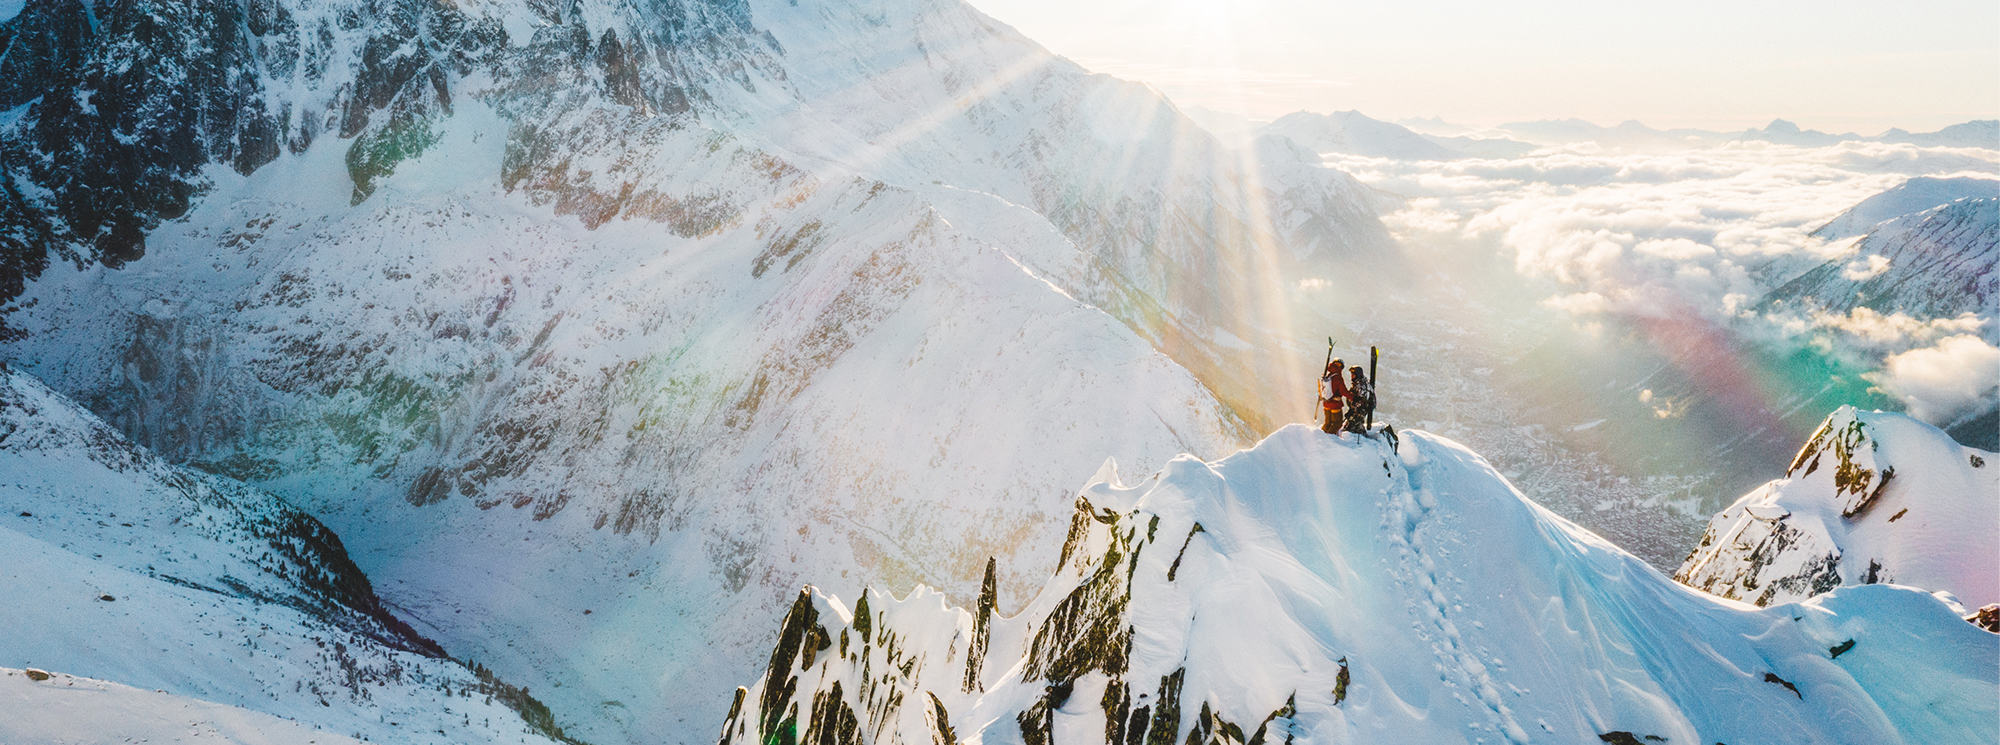 Vivian Bruchez and ski partner, at the top of a skinny ridge in the backcountry, looking down at possible ski lines down at dawn.